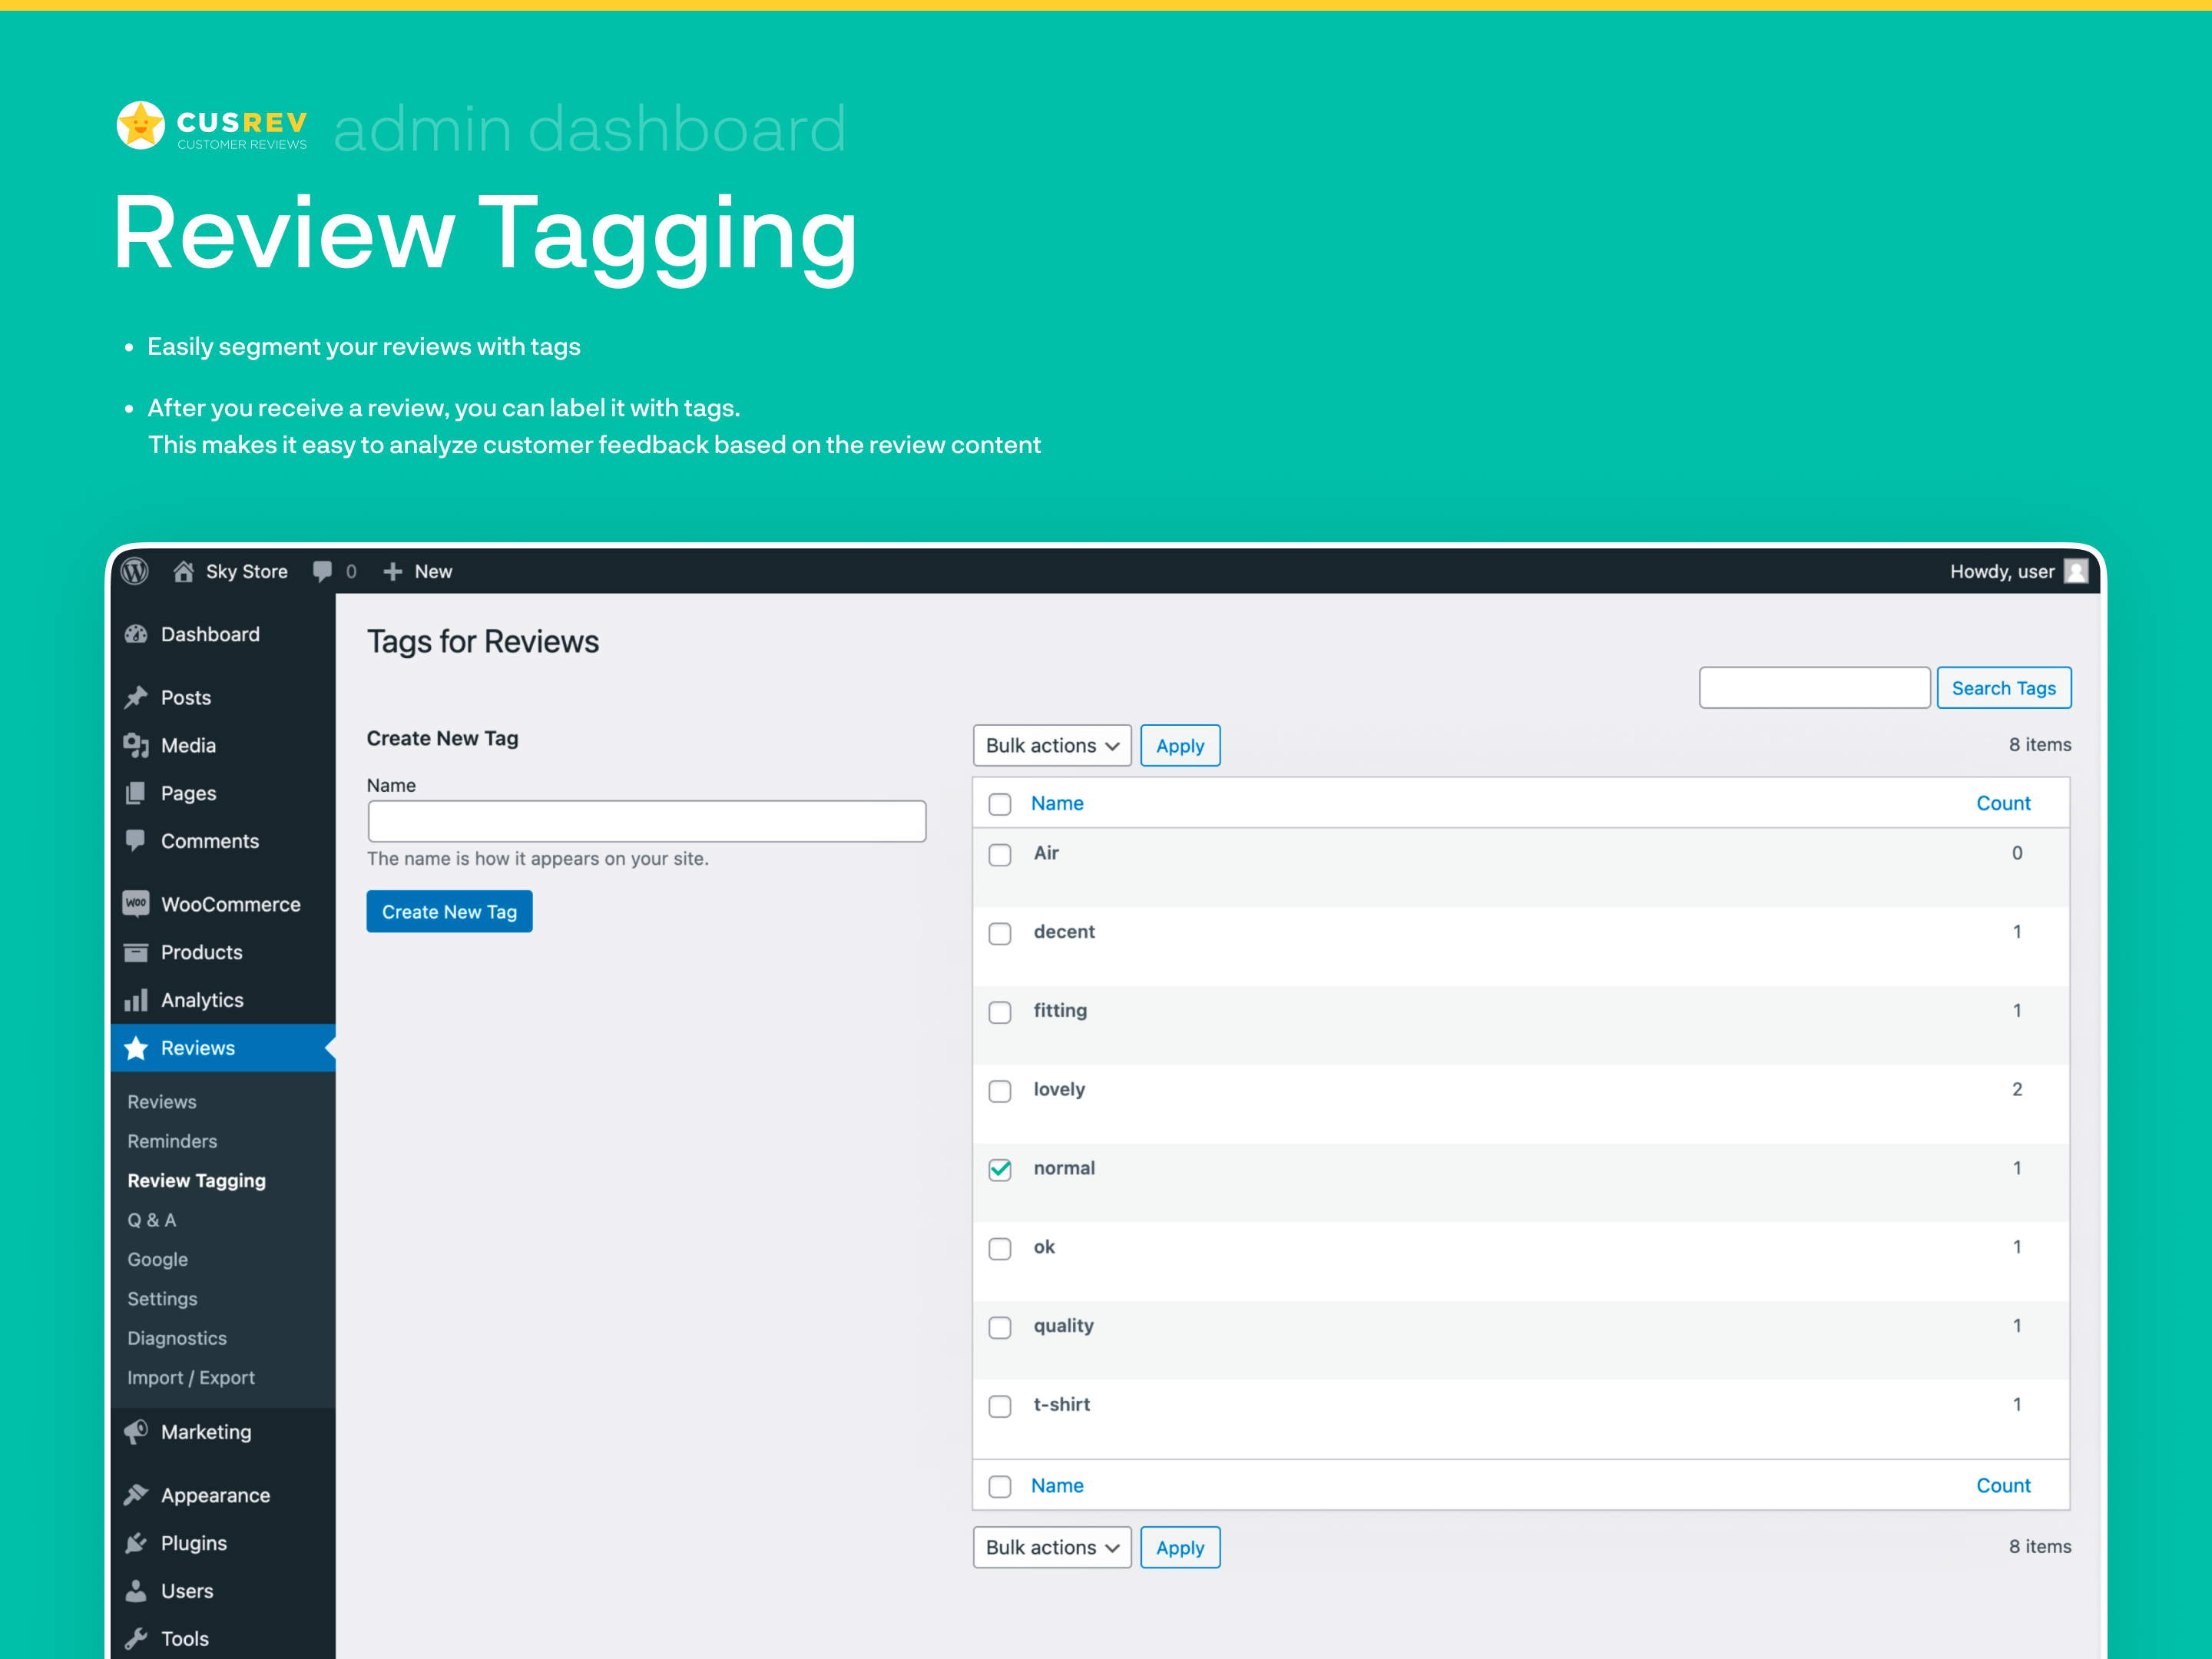 Review Tagging (Admin Dashboard)